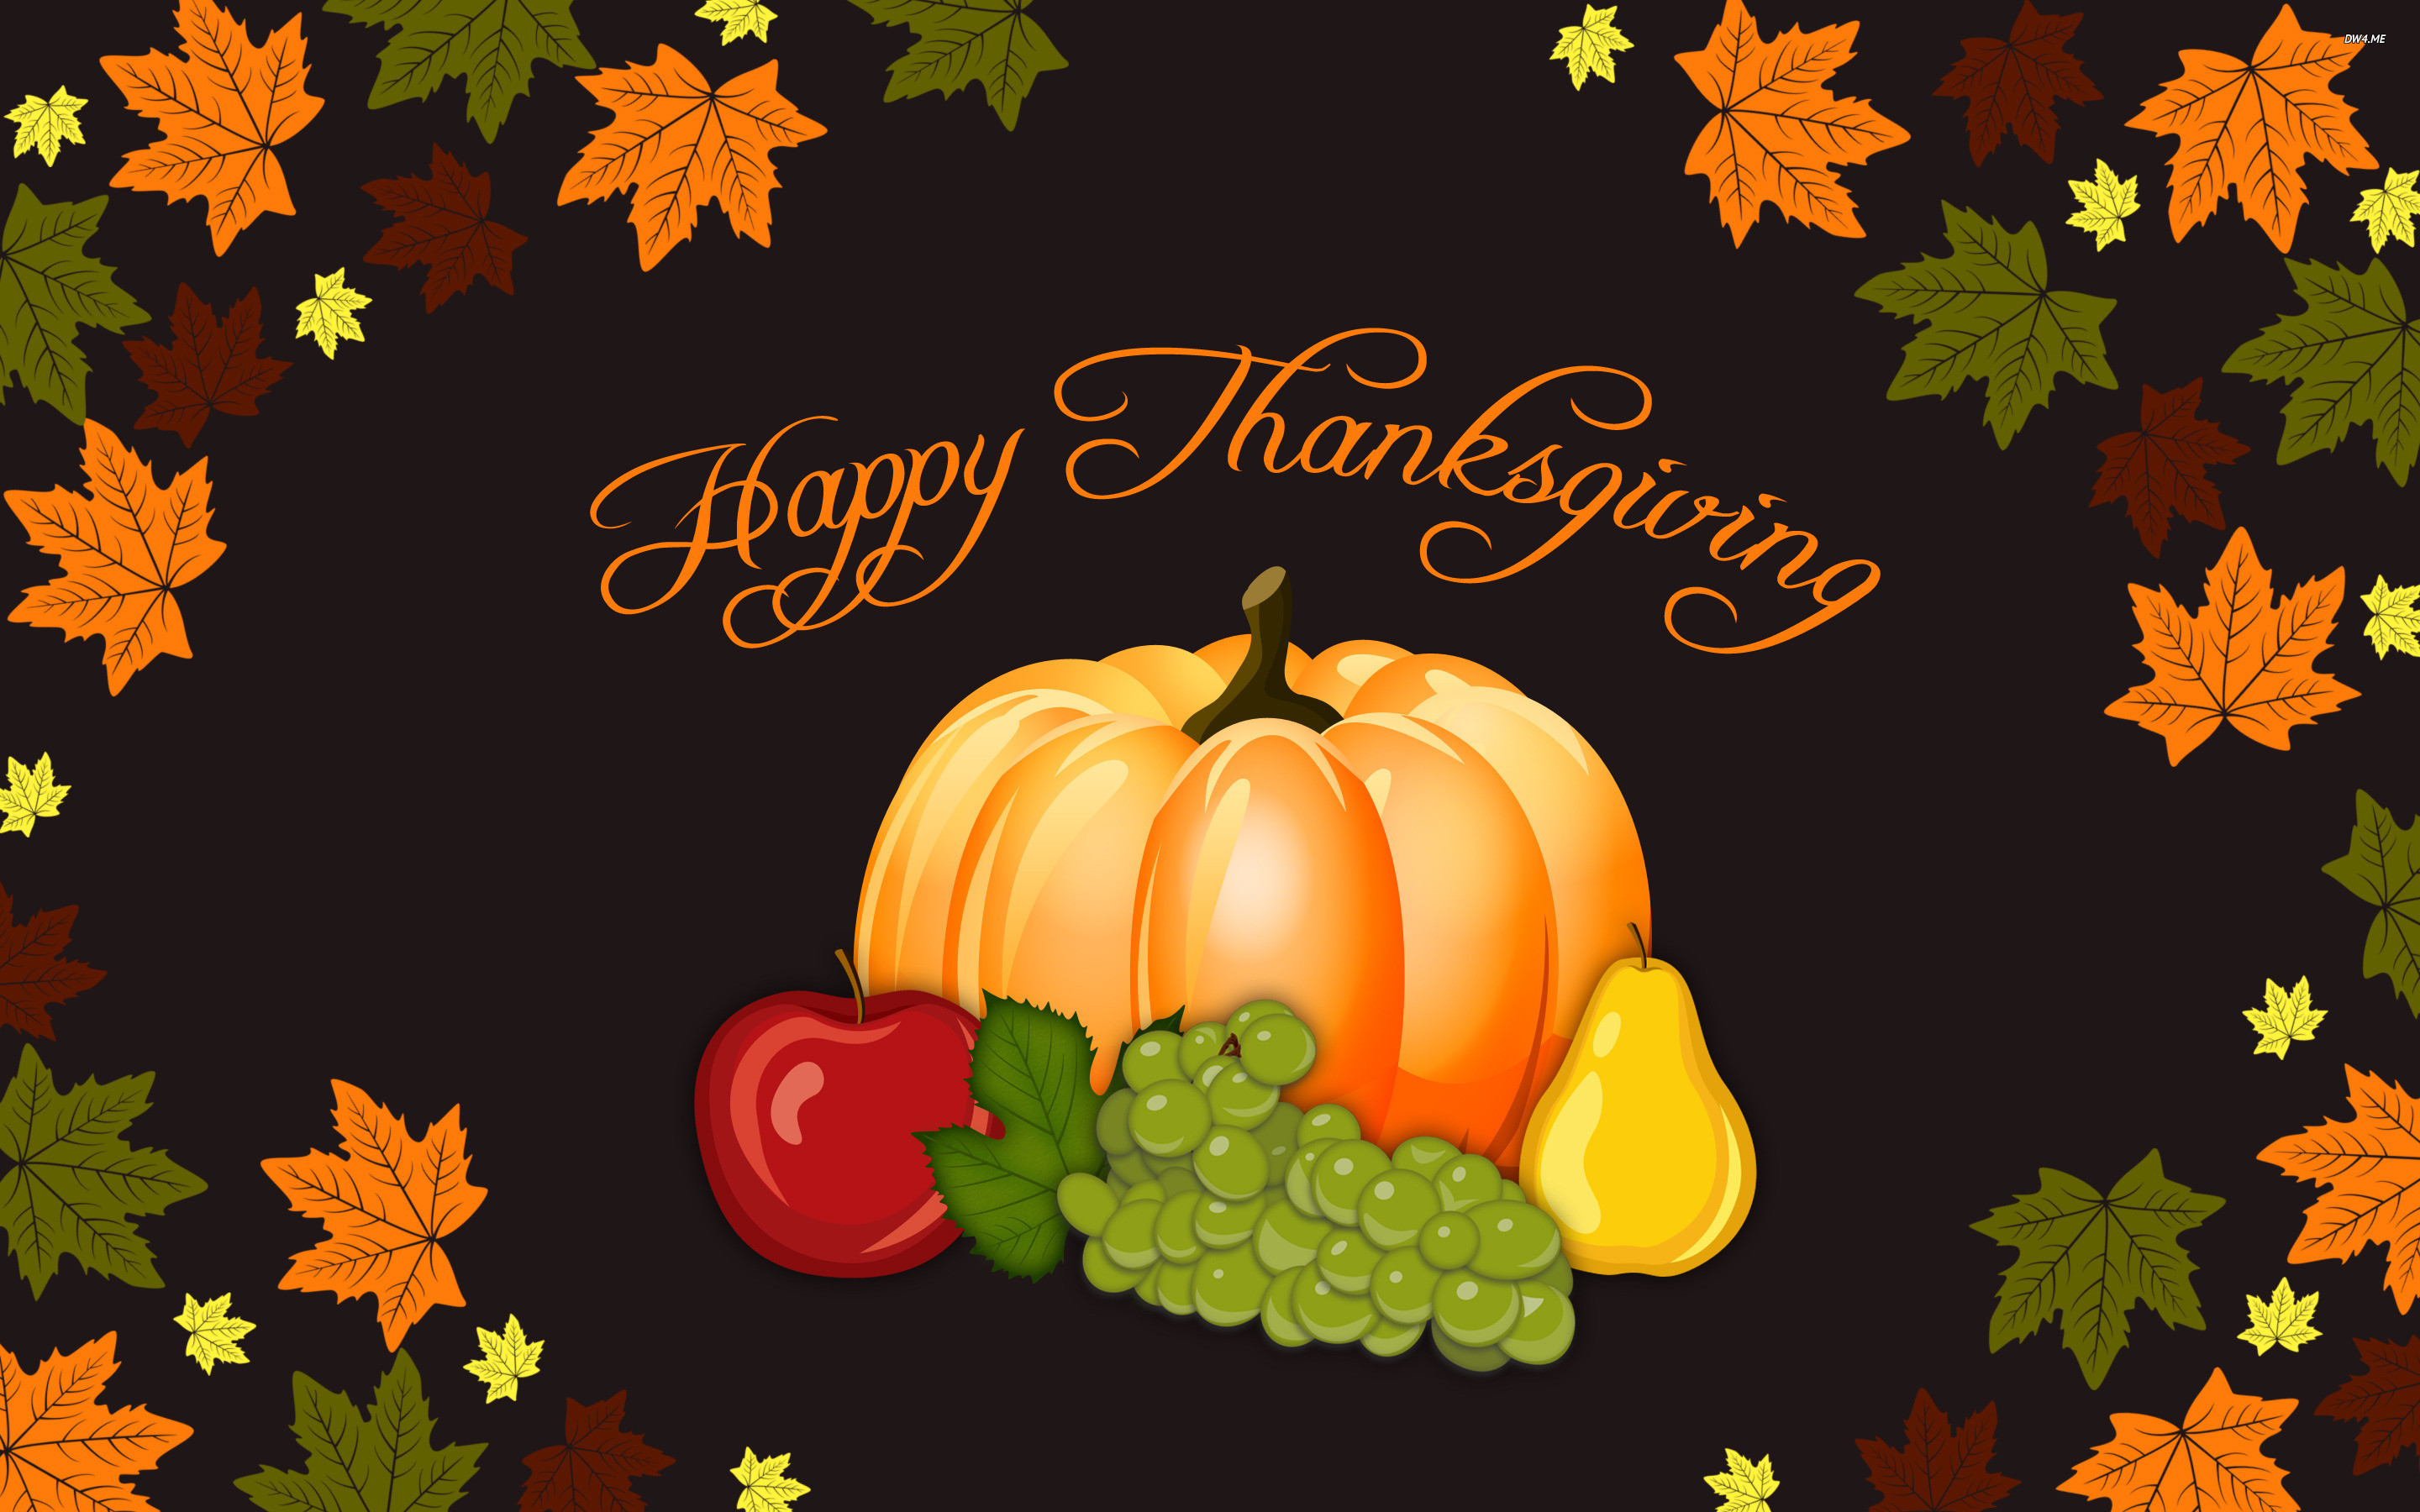 Thanksgiving Wallpapers and Screensavers 57 images 2880x1800